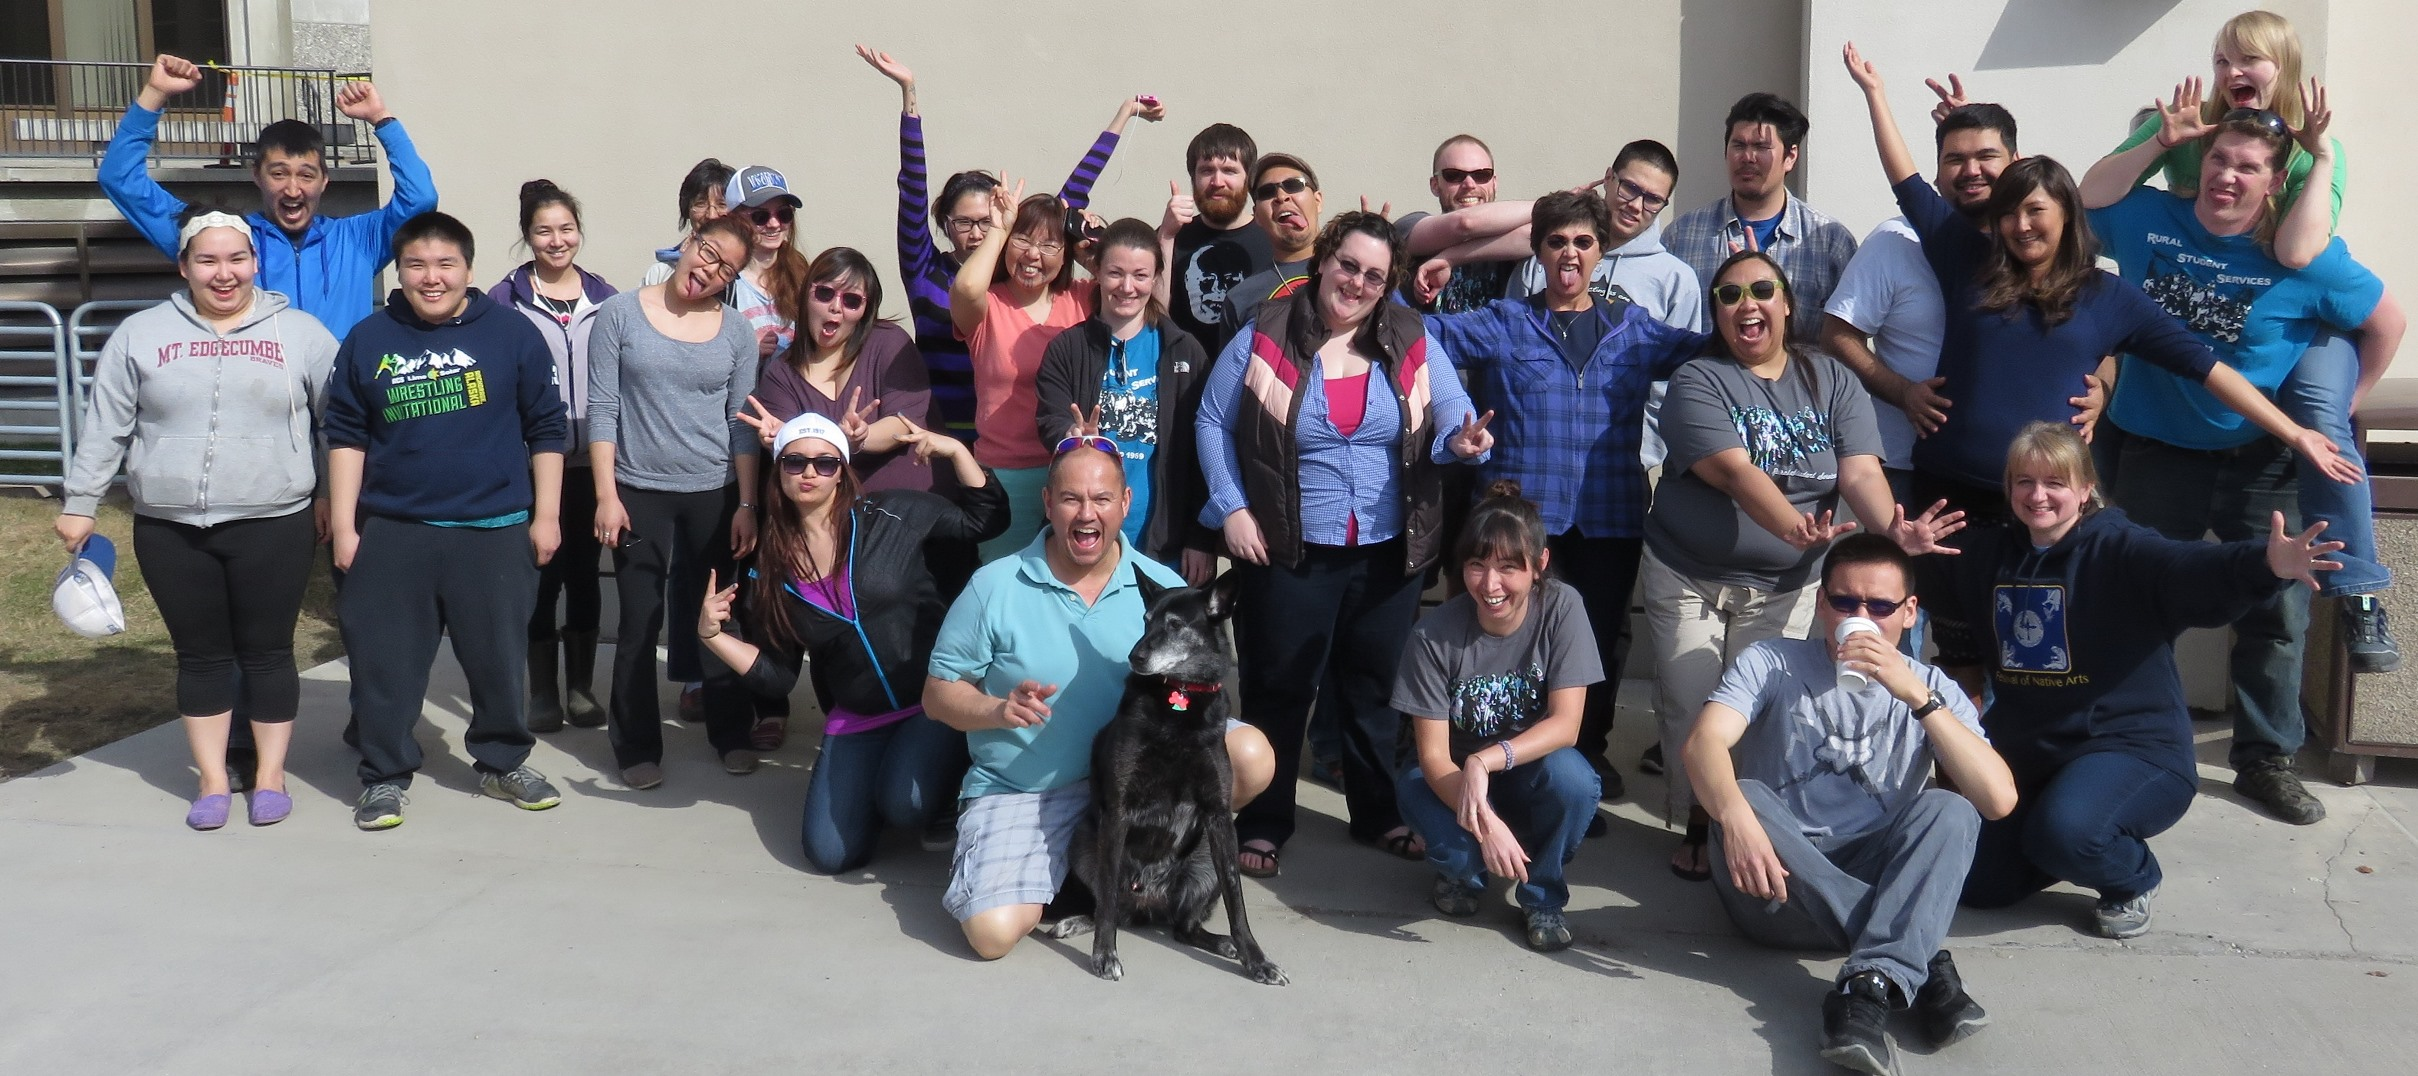 Students, staff, and faculty pose after the annual Springfest BBQ at RSS